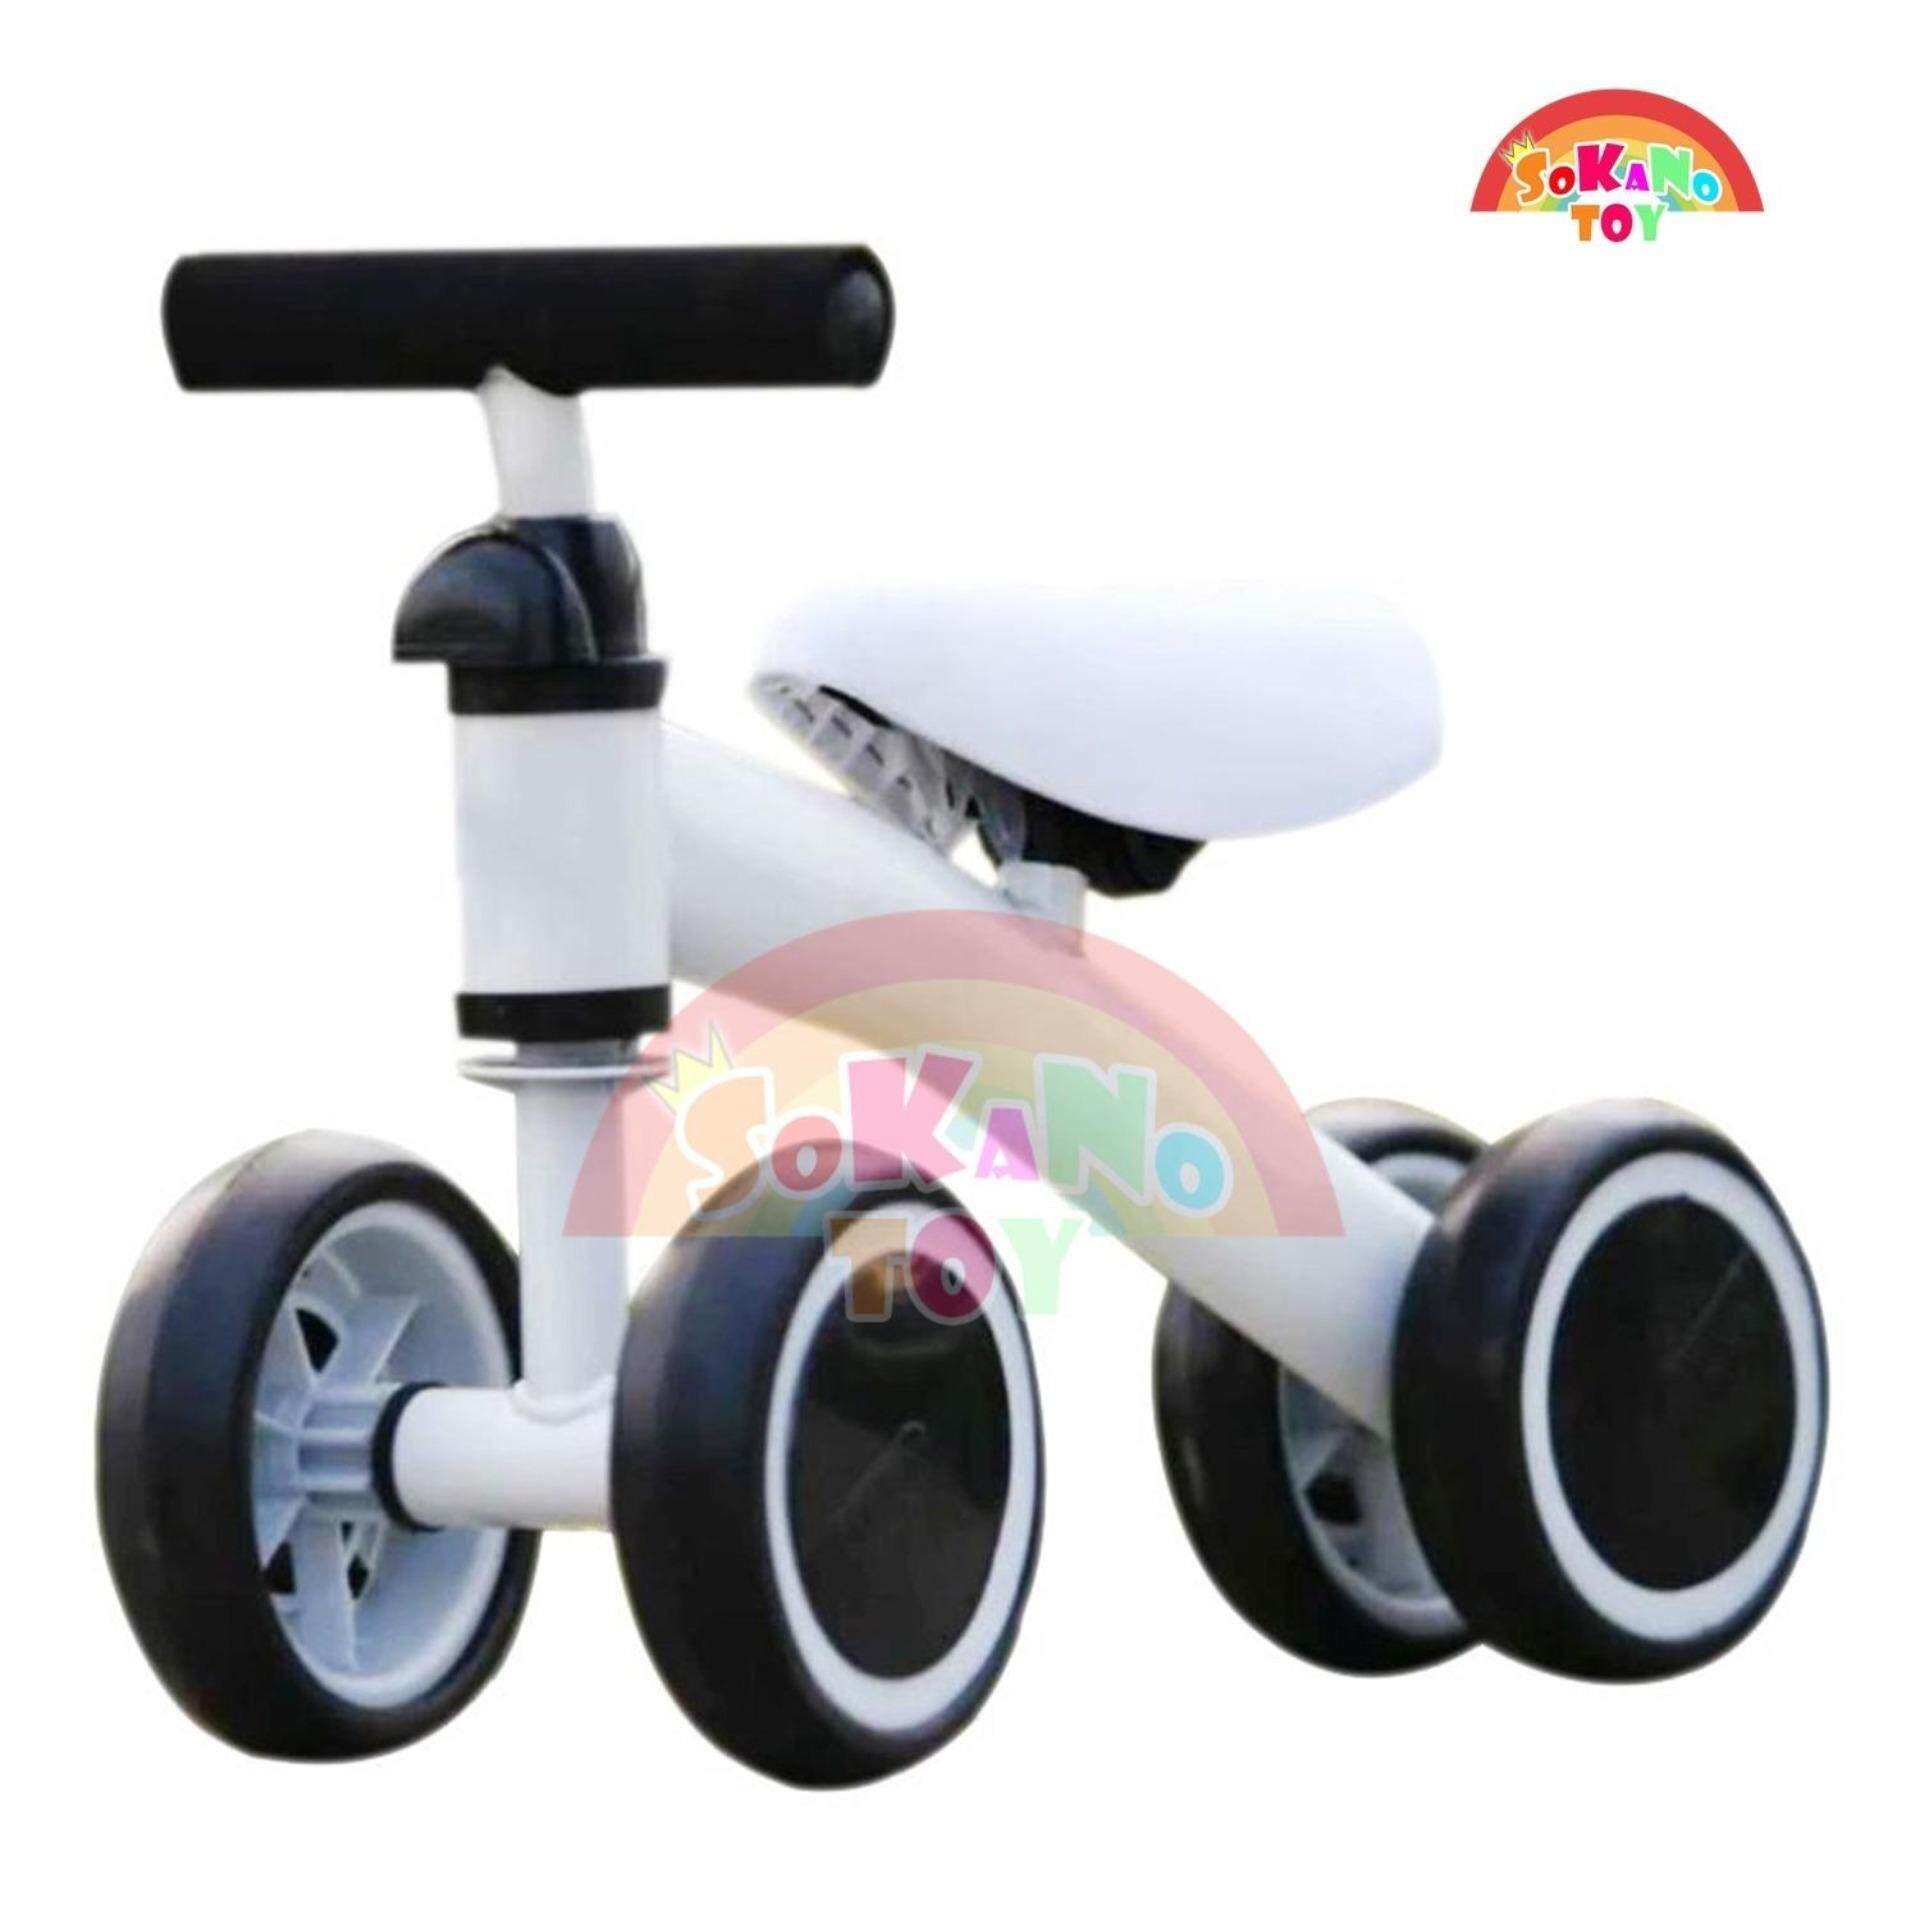 SOKANO TOY T004 Children Balance Bikes Scooter Baby Walker Infant 1-3 years Scooter- White Toys for boys